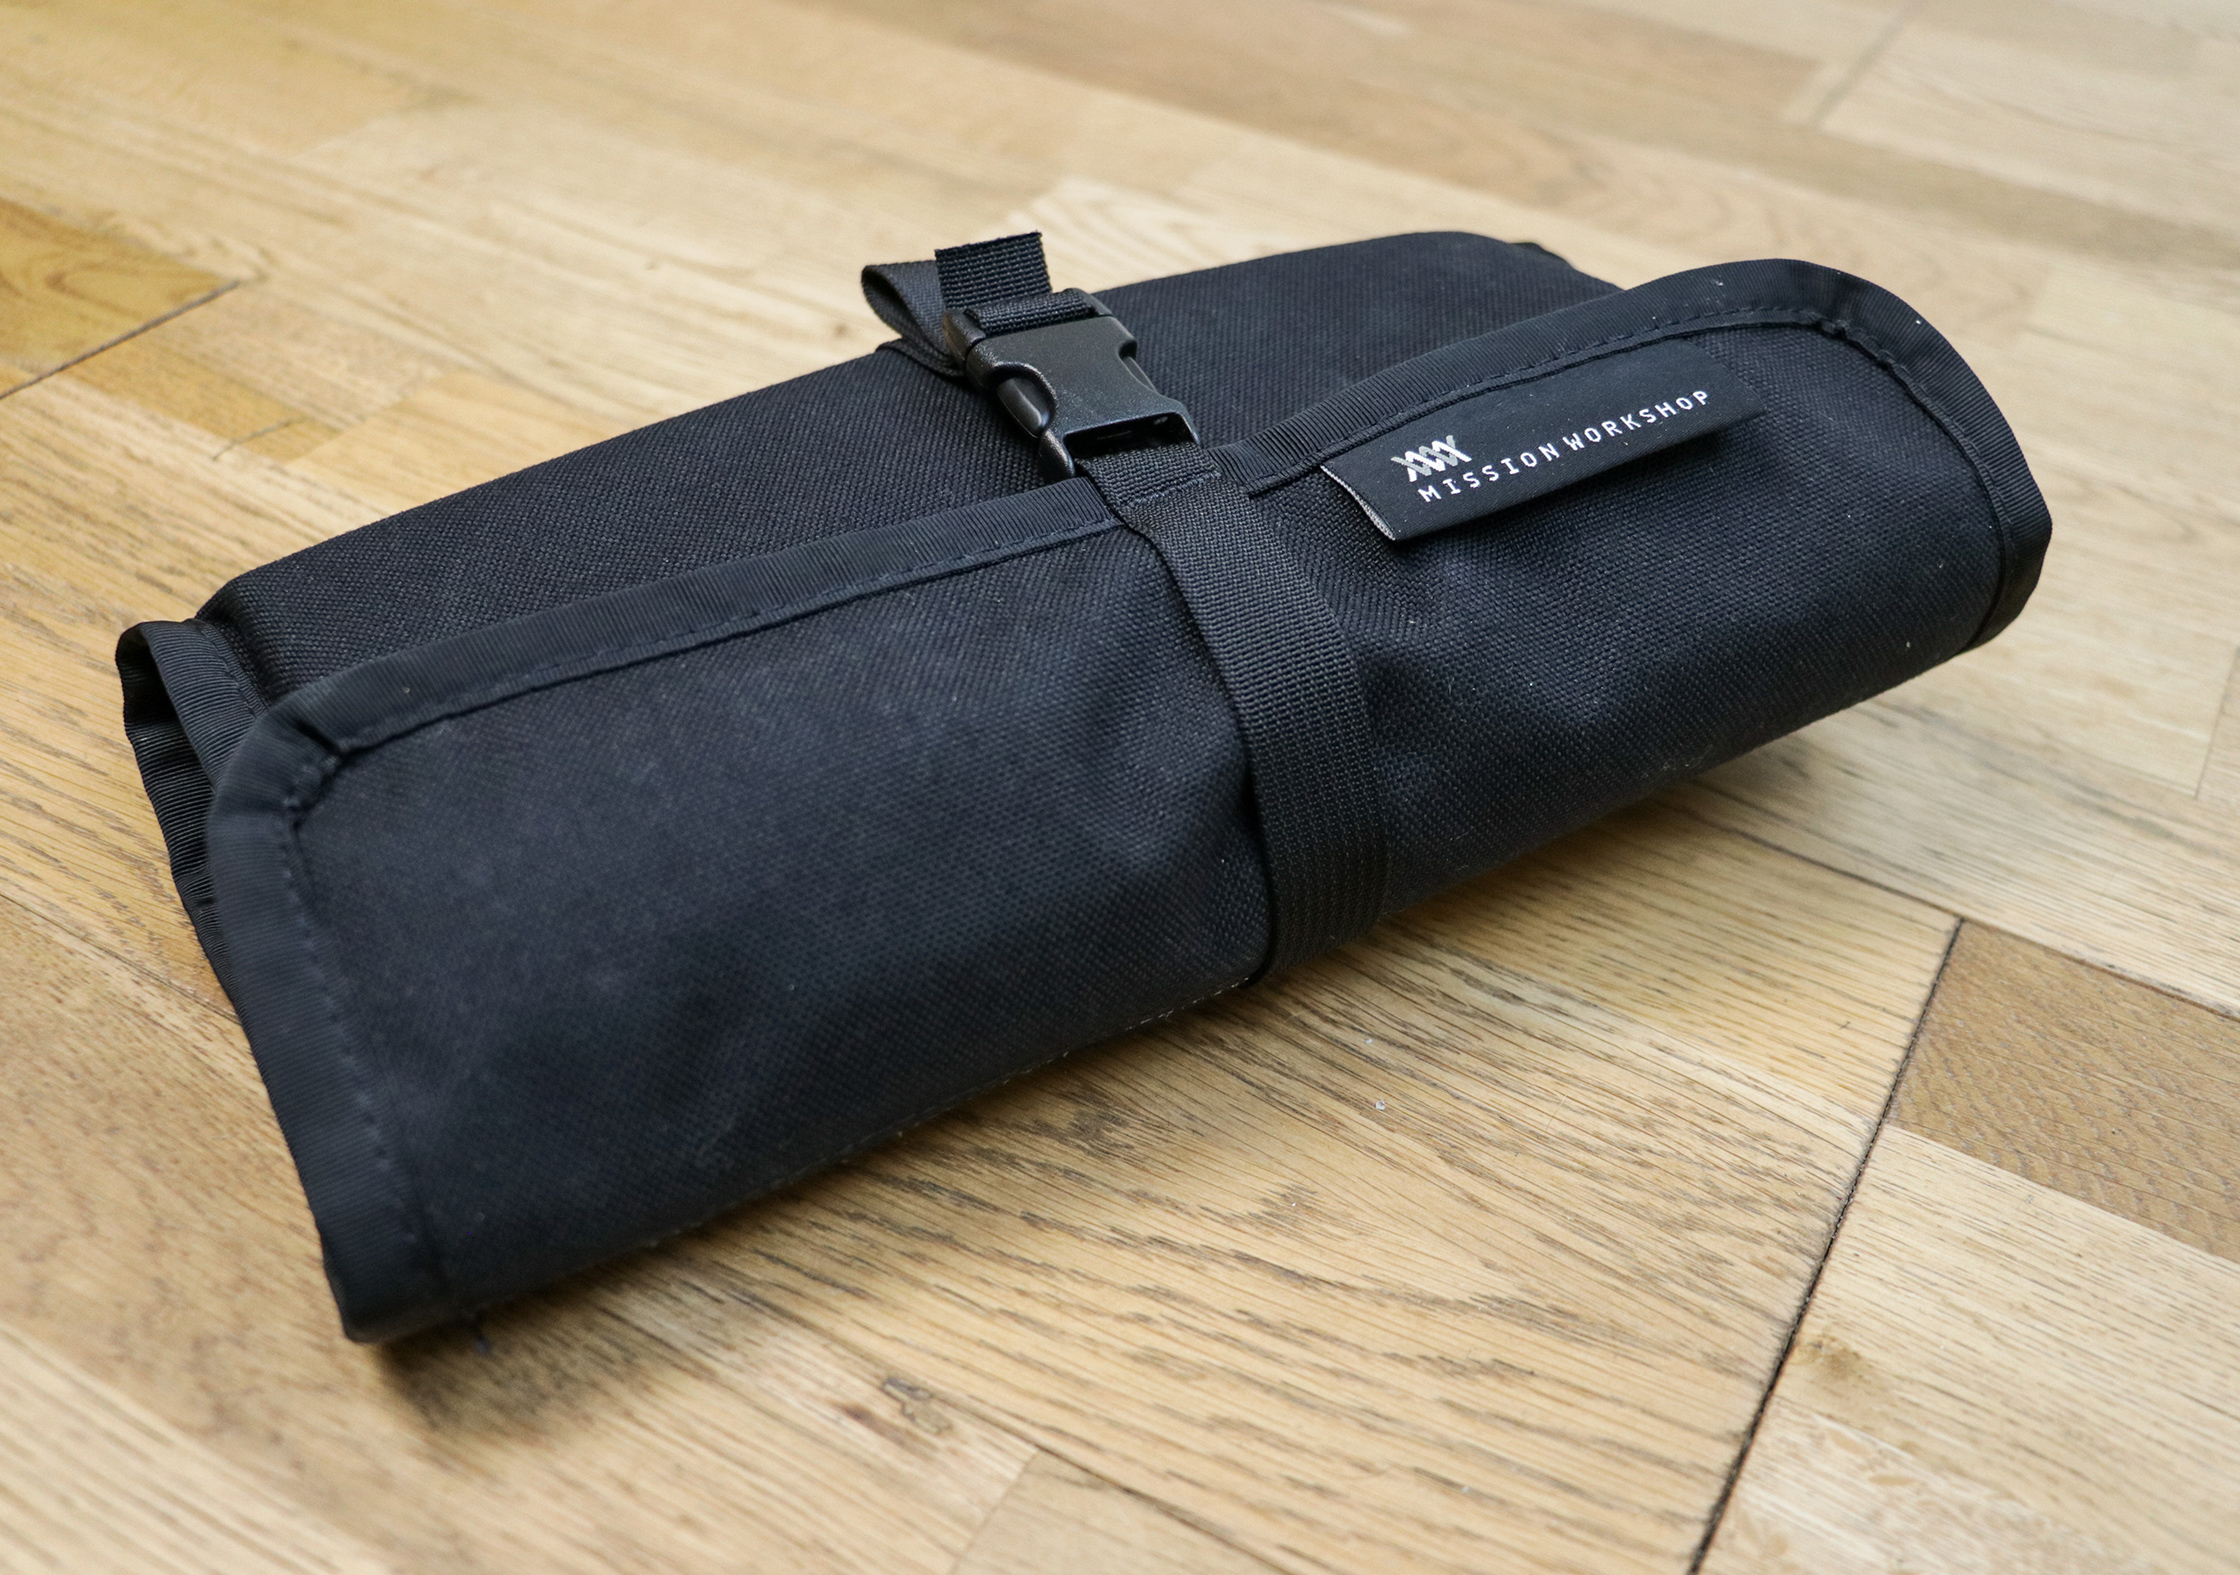 Full Mission Workshop Internal Tool Roll Rolled Up